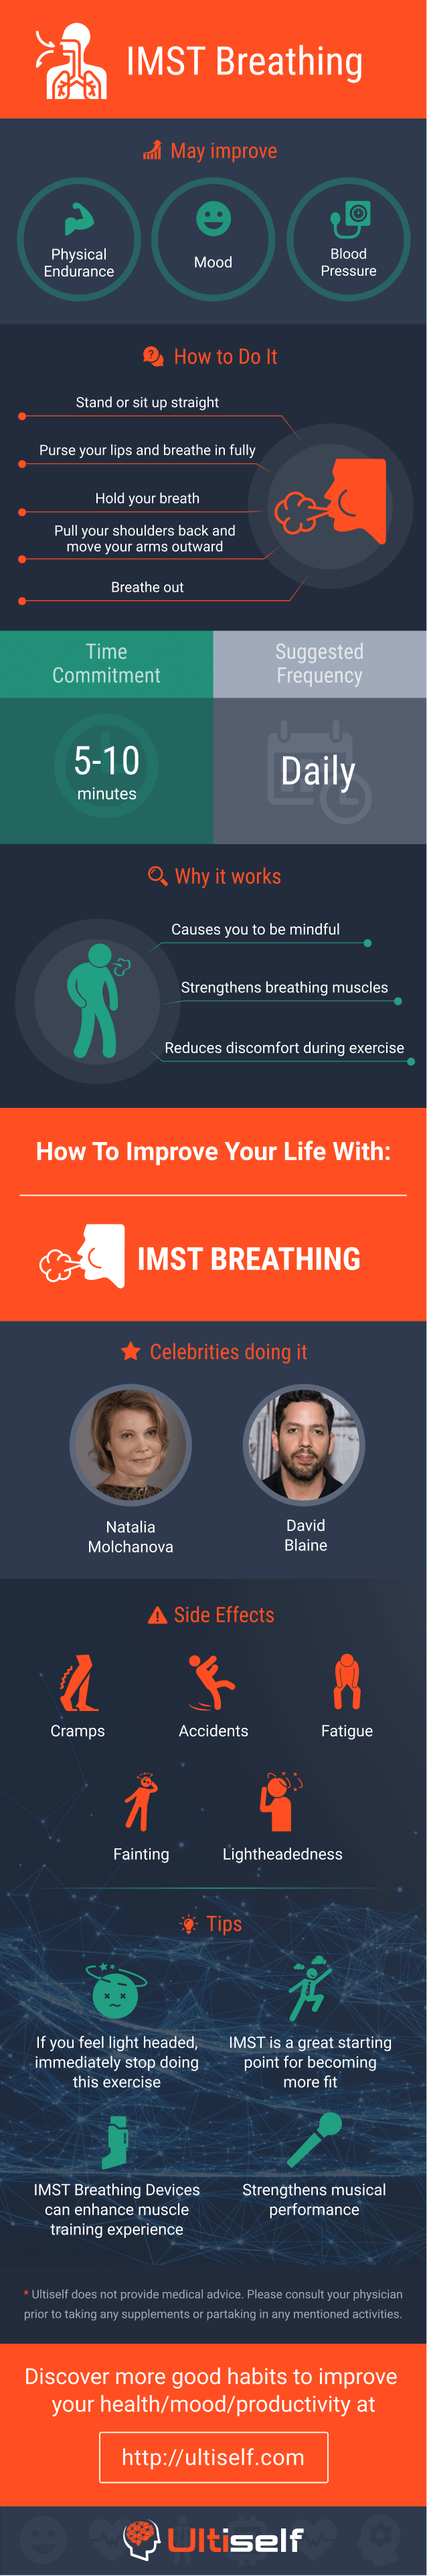 IMST Breathing infographic